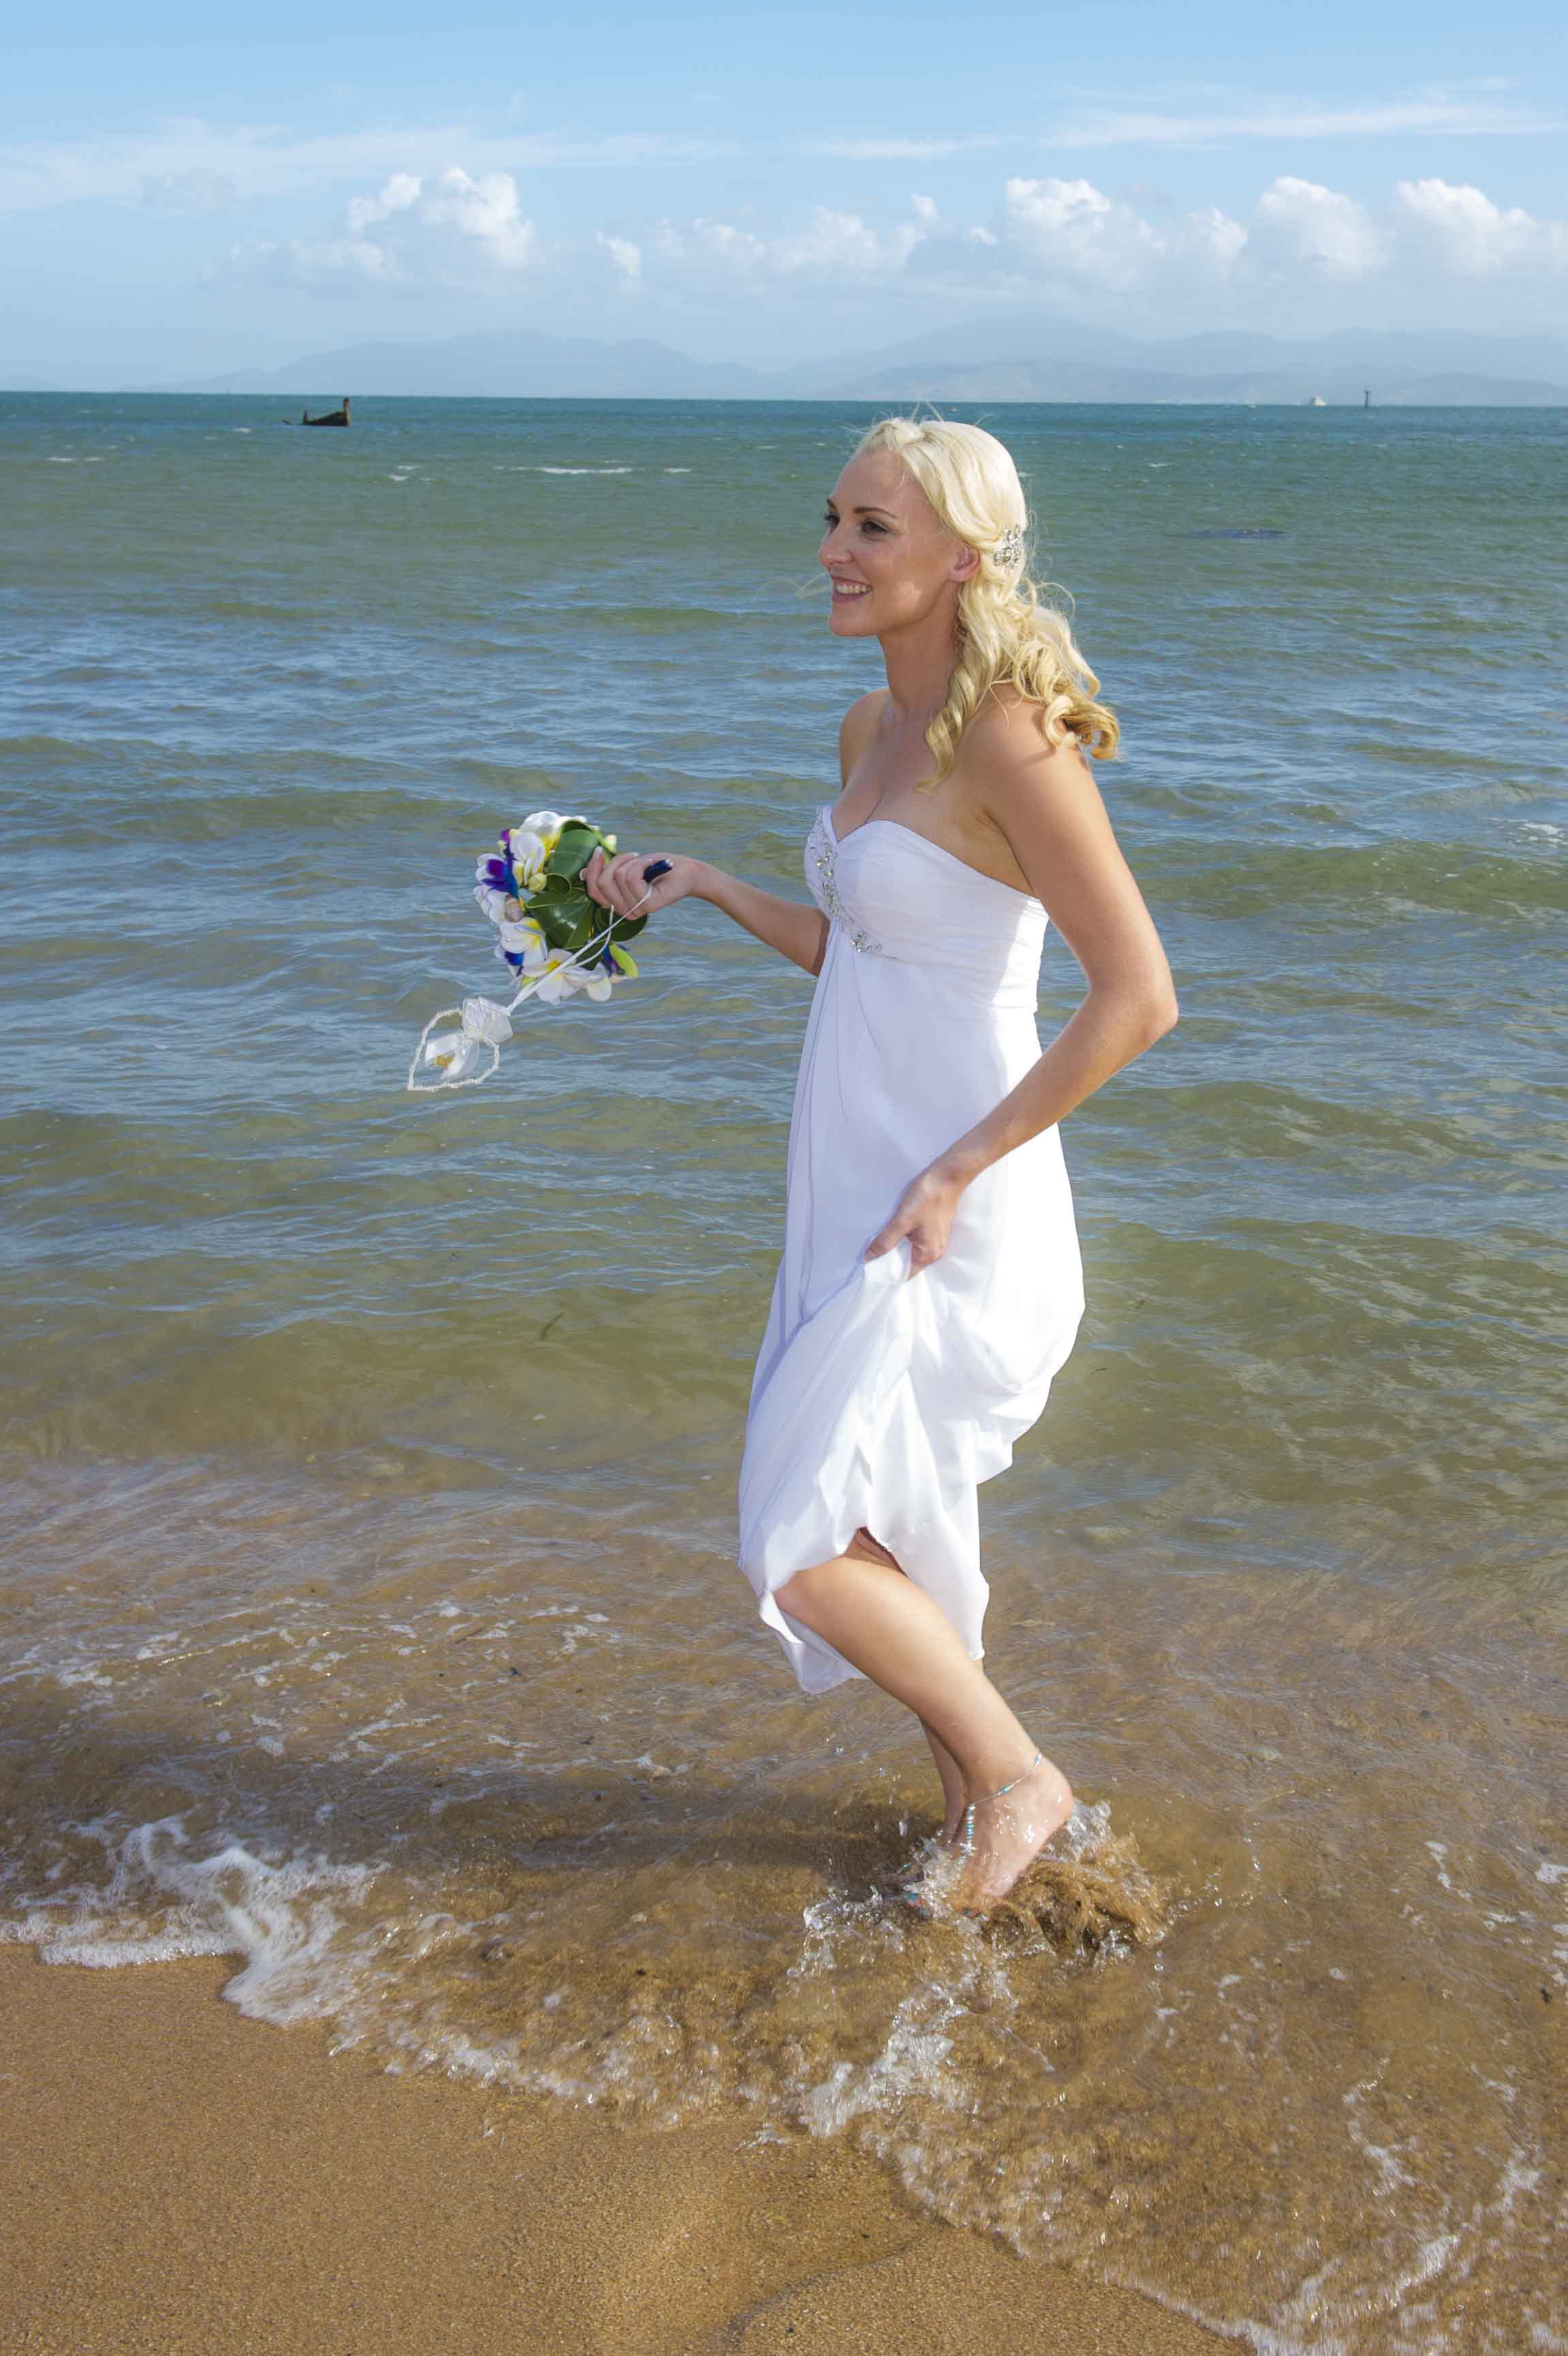 Bride strolling with bouquet of flowers in beach